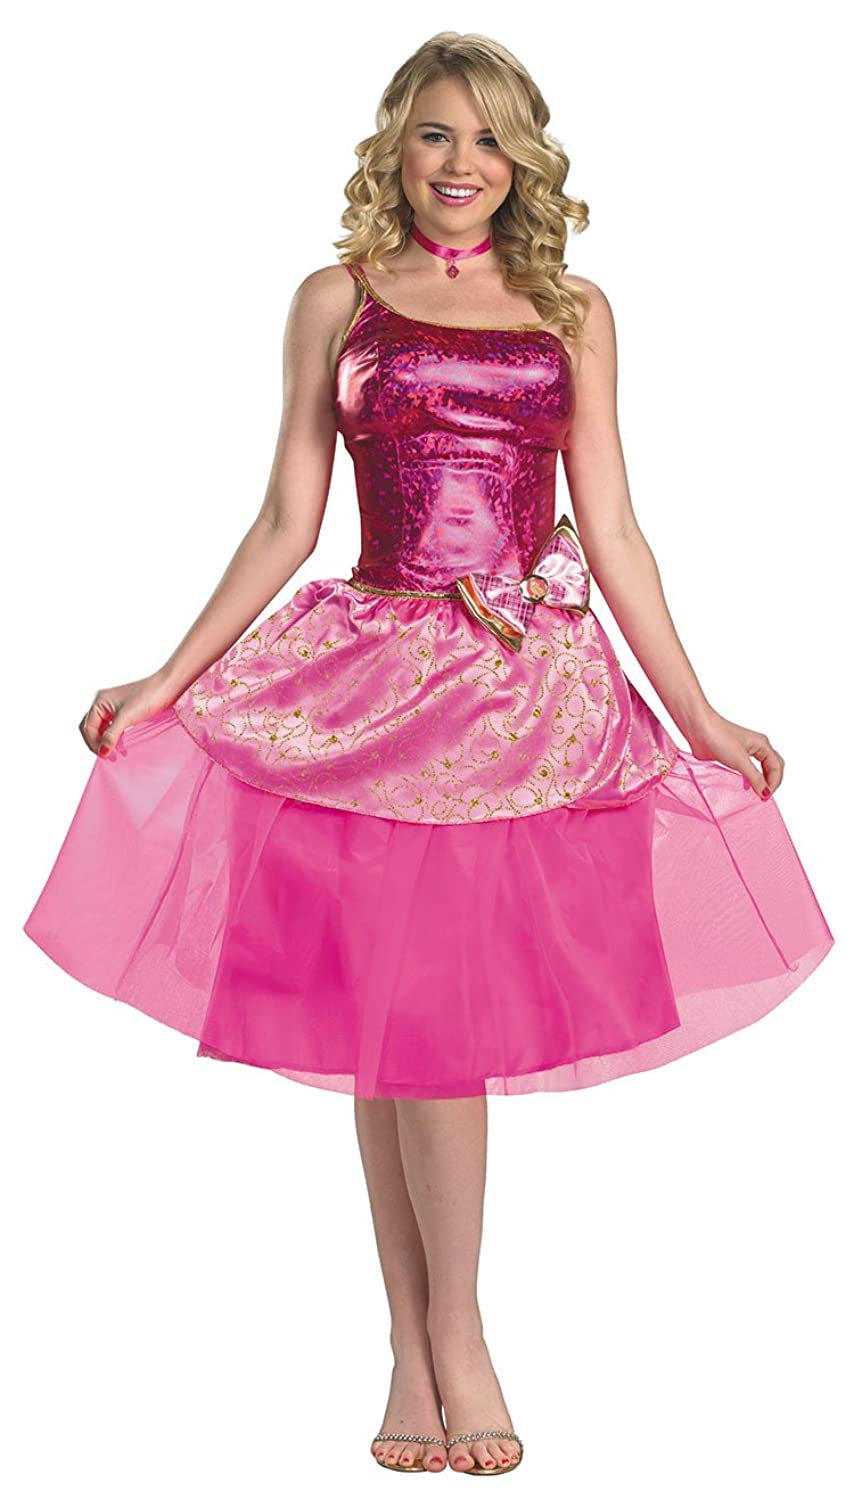 Barbie's Princess Charm School Costume